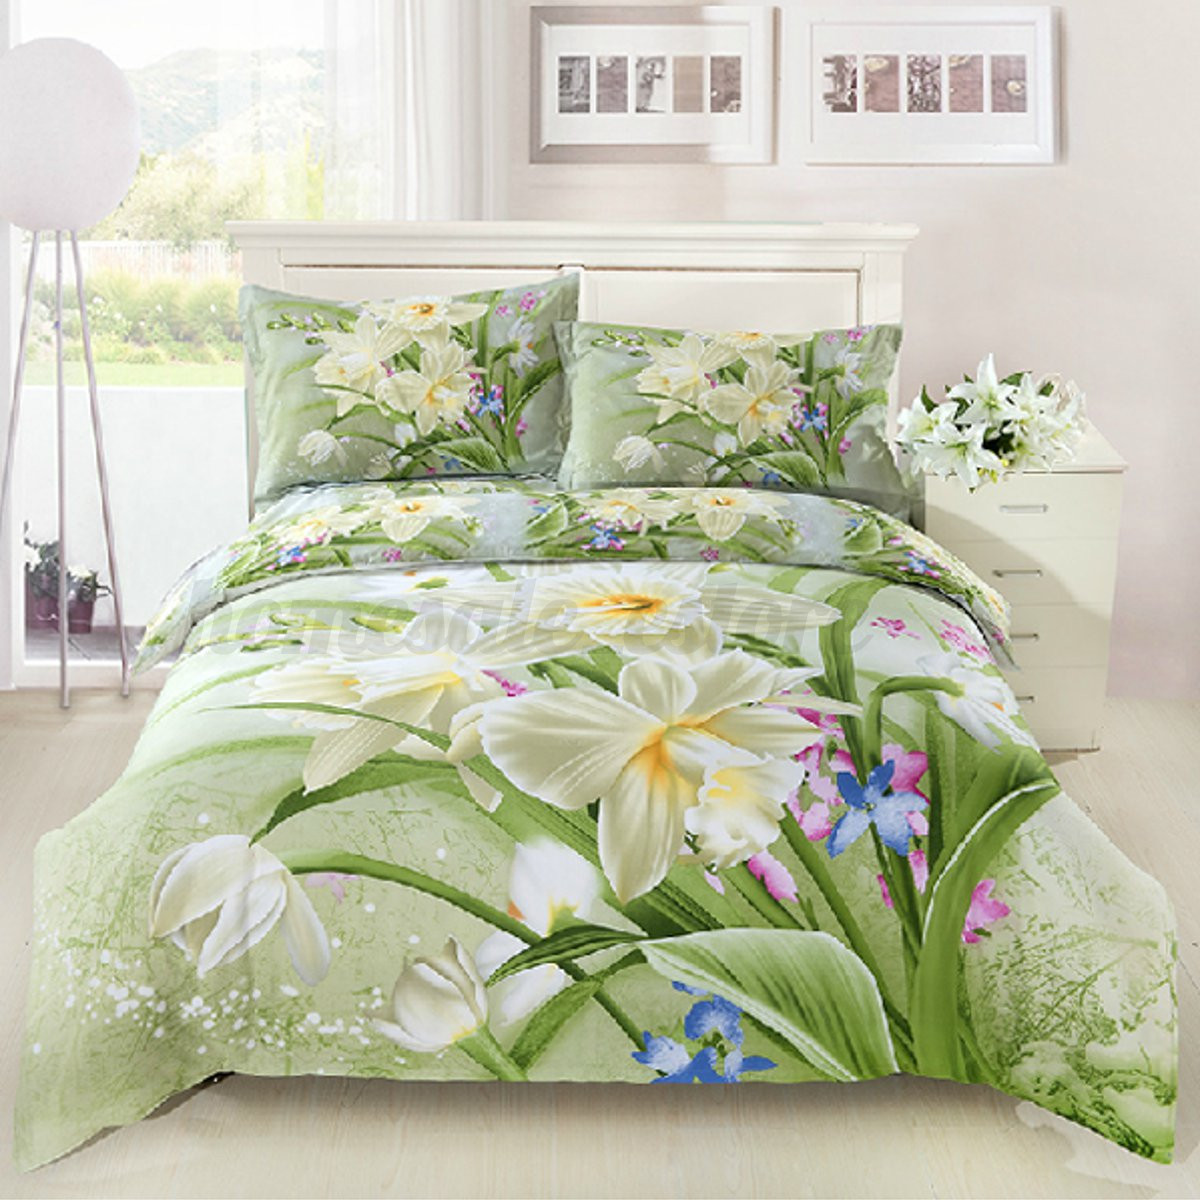 new 3d bedding sets king queen size duvet cover bed sheet pillowcase bedclothes ebay. Black Bedroom Furniture Sets. Home Design Ideas